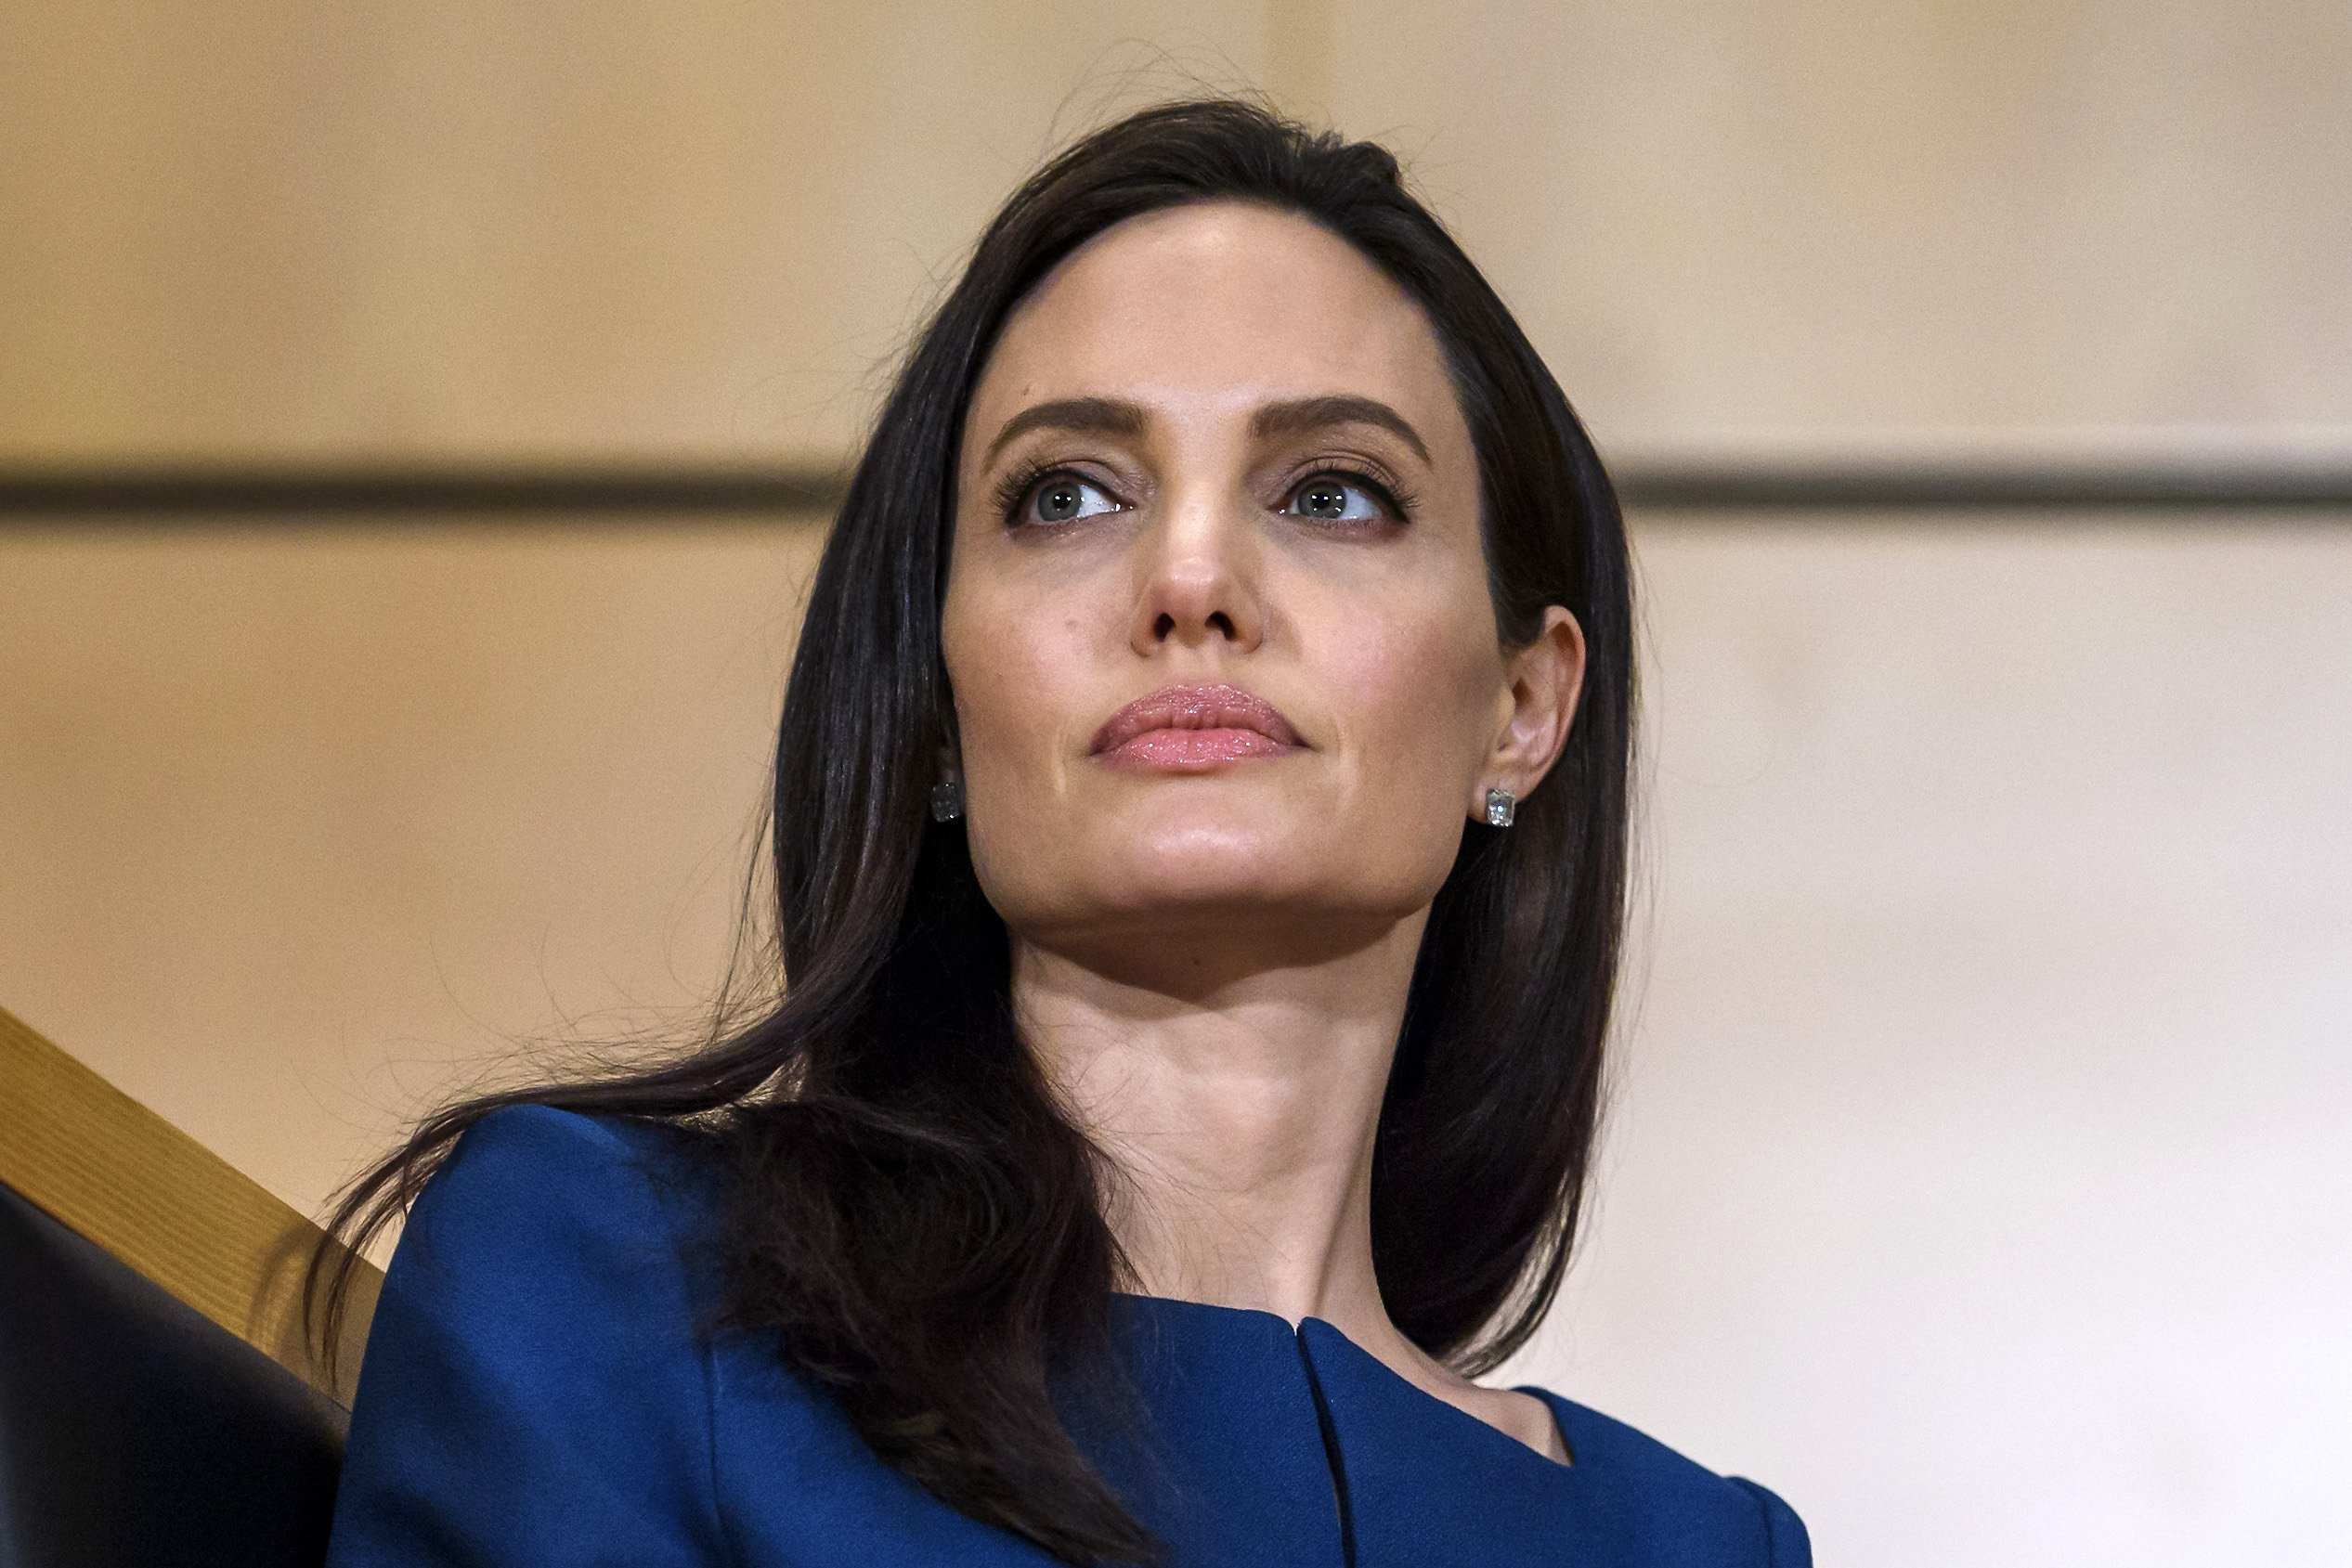 United Nations High Commissioner for Refugees (UNHCR) special envoy Angelina Jolie attends the annual lecture of the Sergio Vieira de Mello Foundation at the United Nations (UN) office in Geneva on March 15, 2017